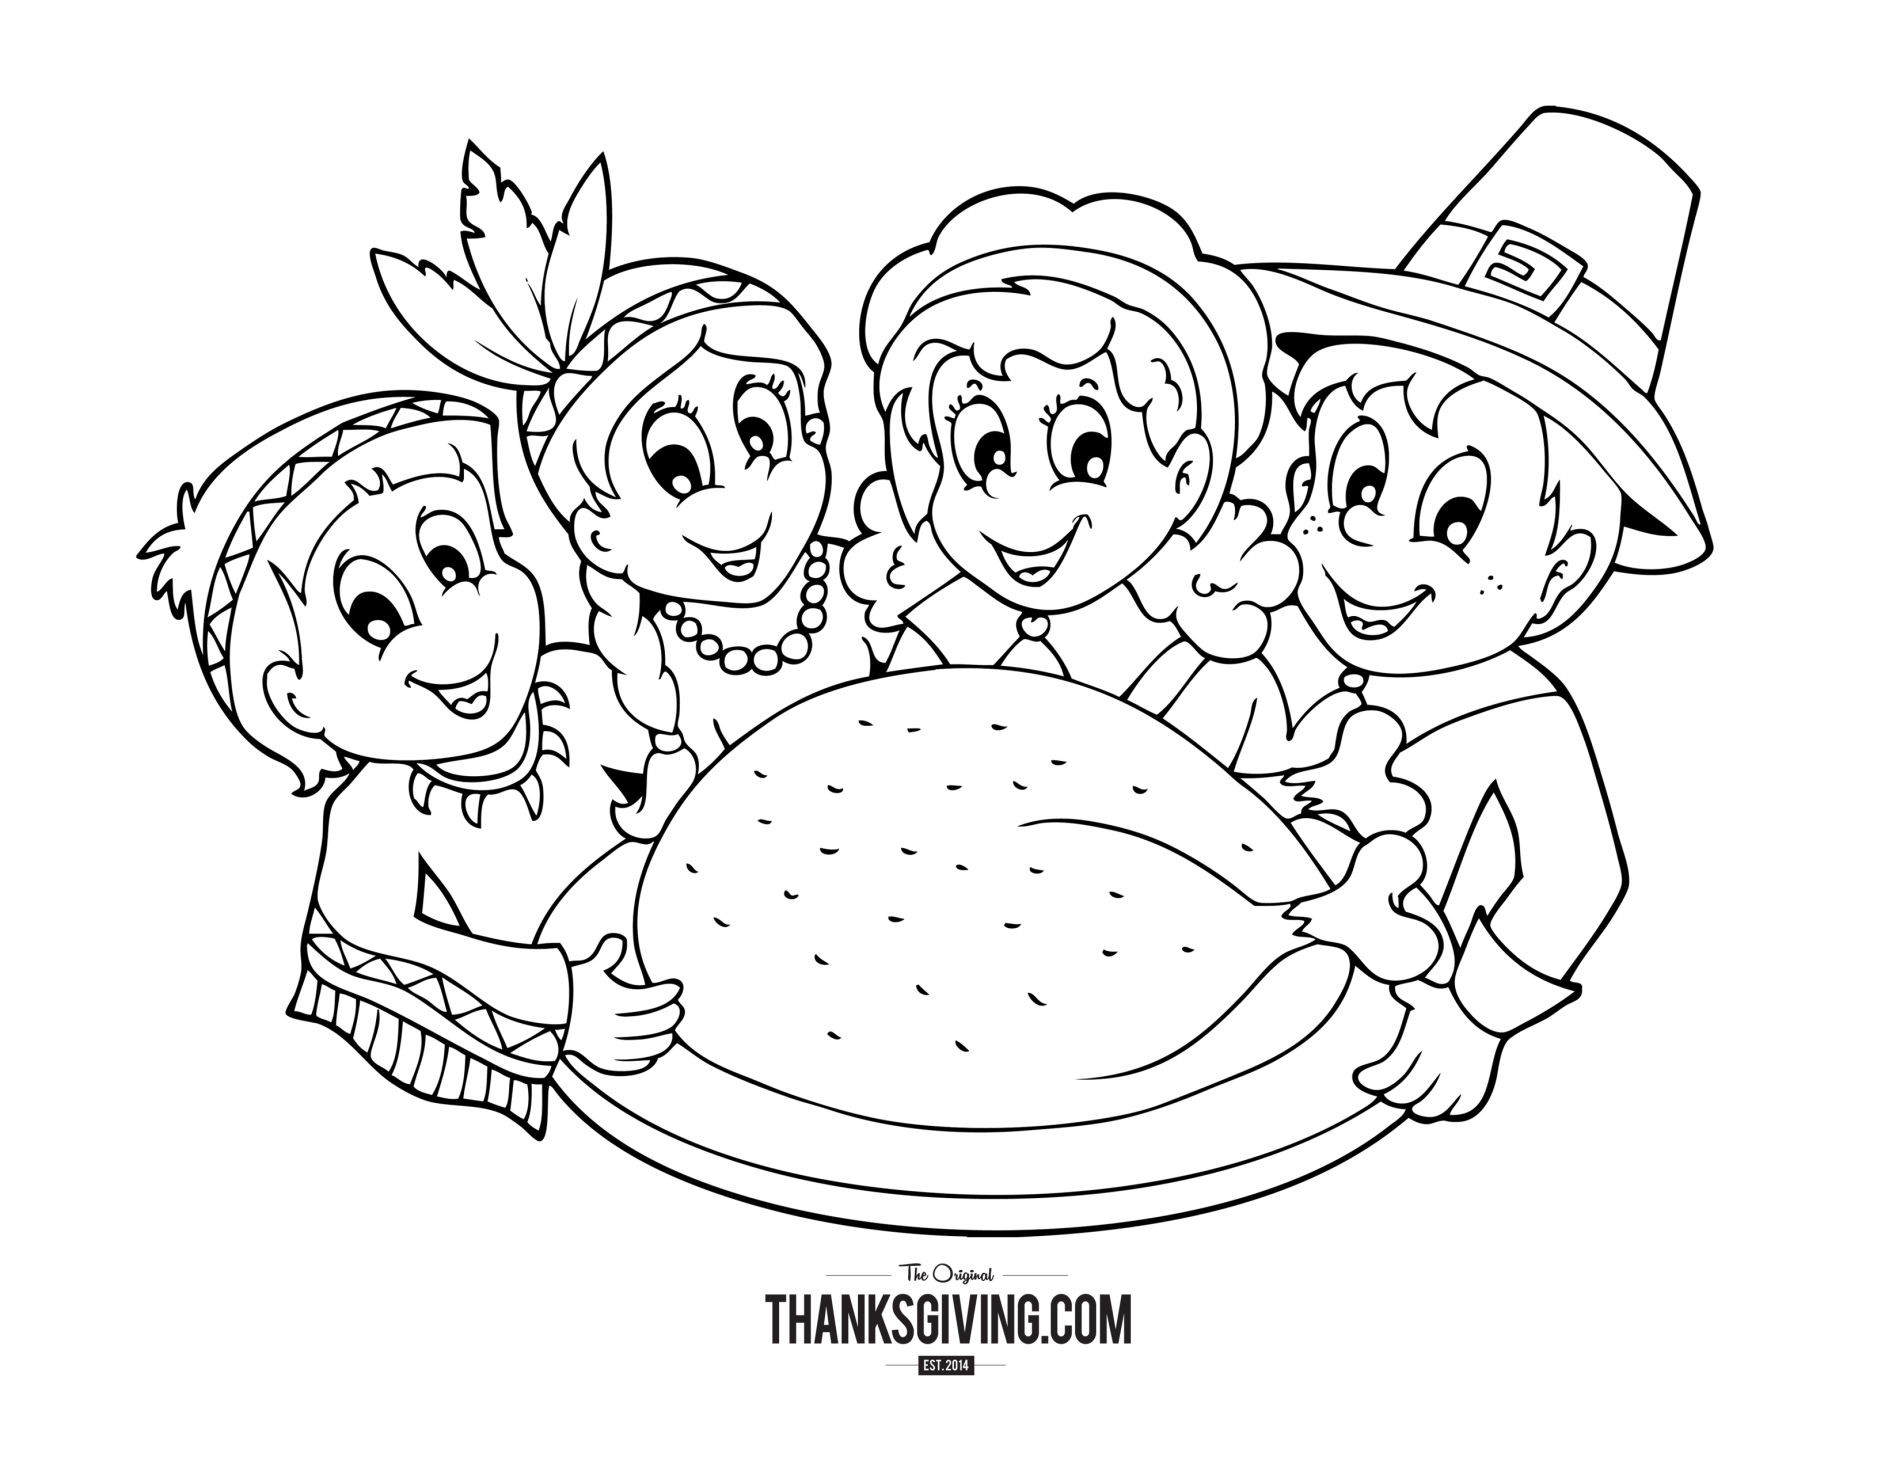 Thanksgiving Turkey Coloring Pages  Thanksgiving Coloring Book Pages for Kids